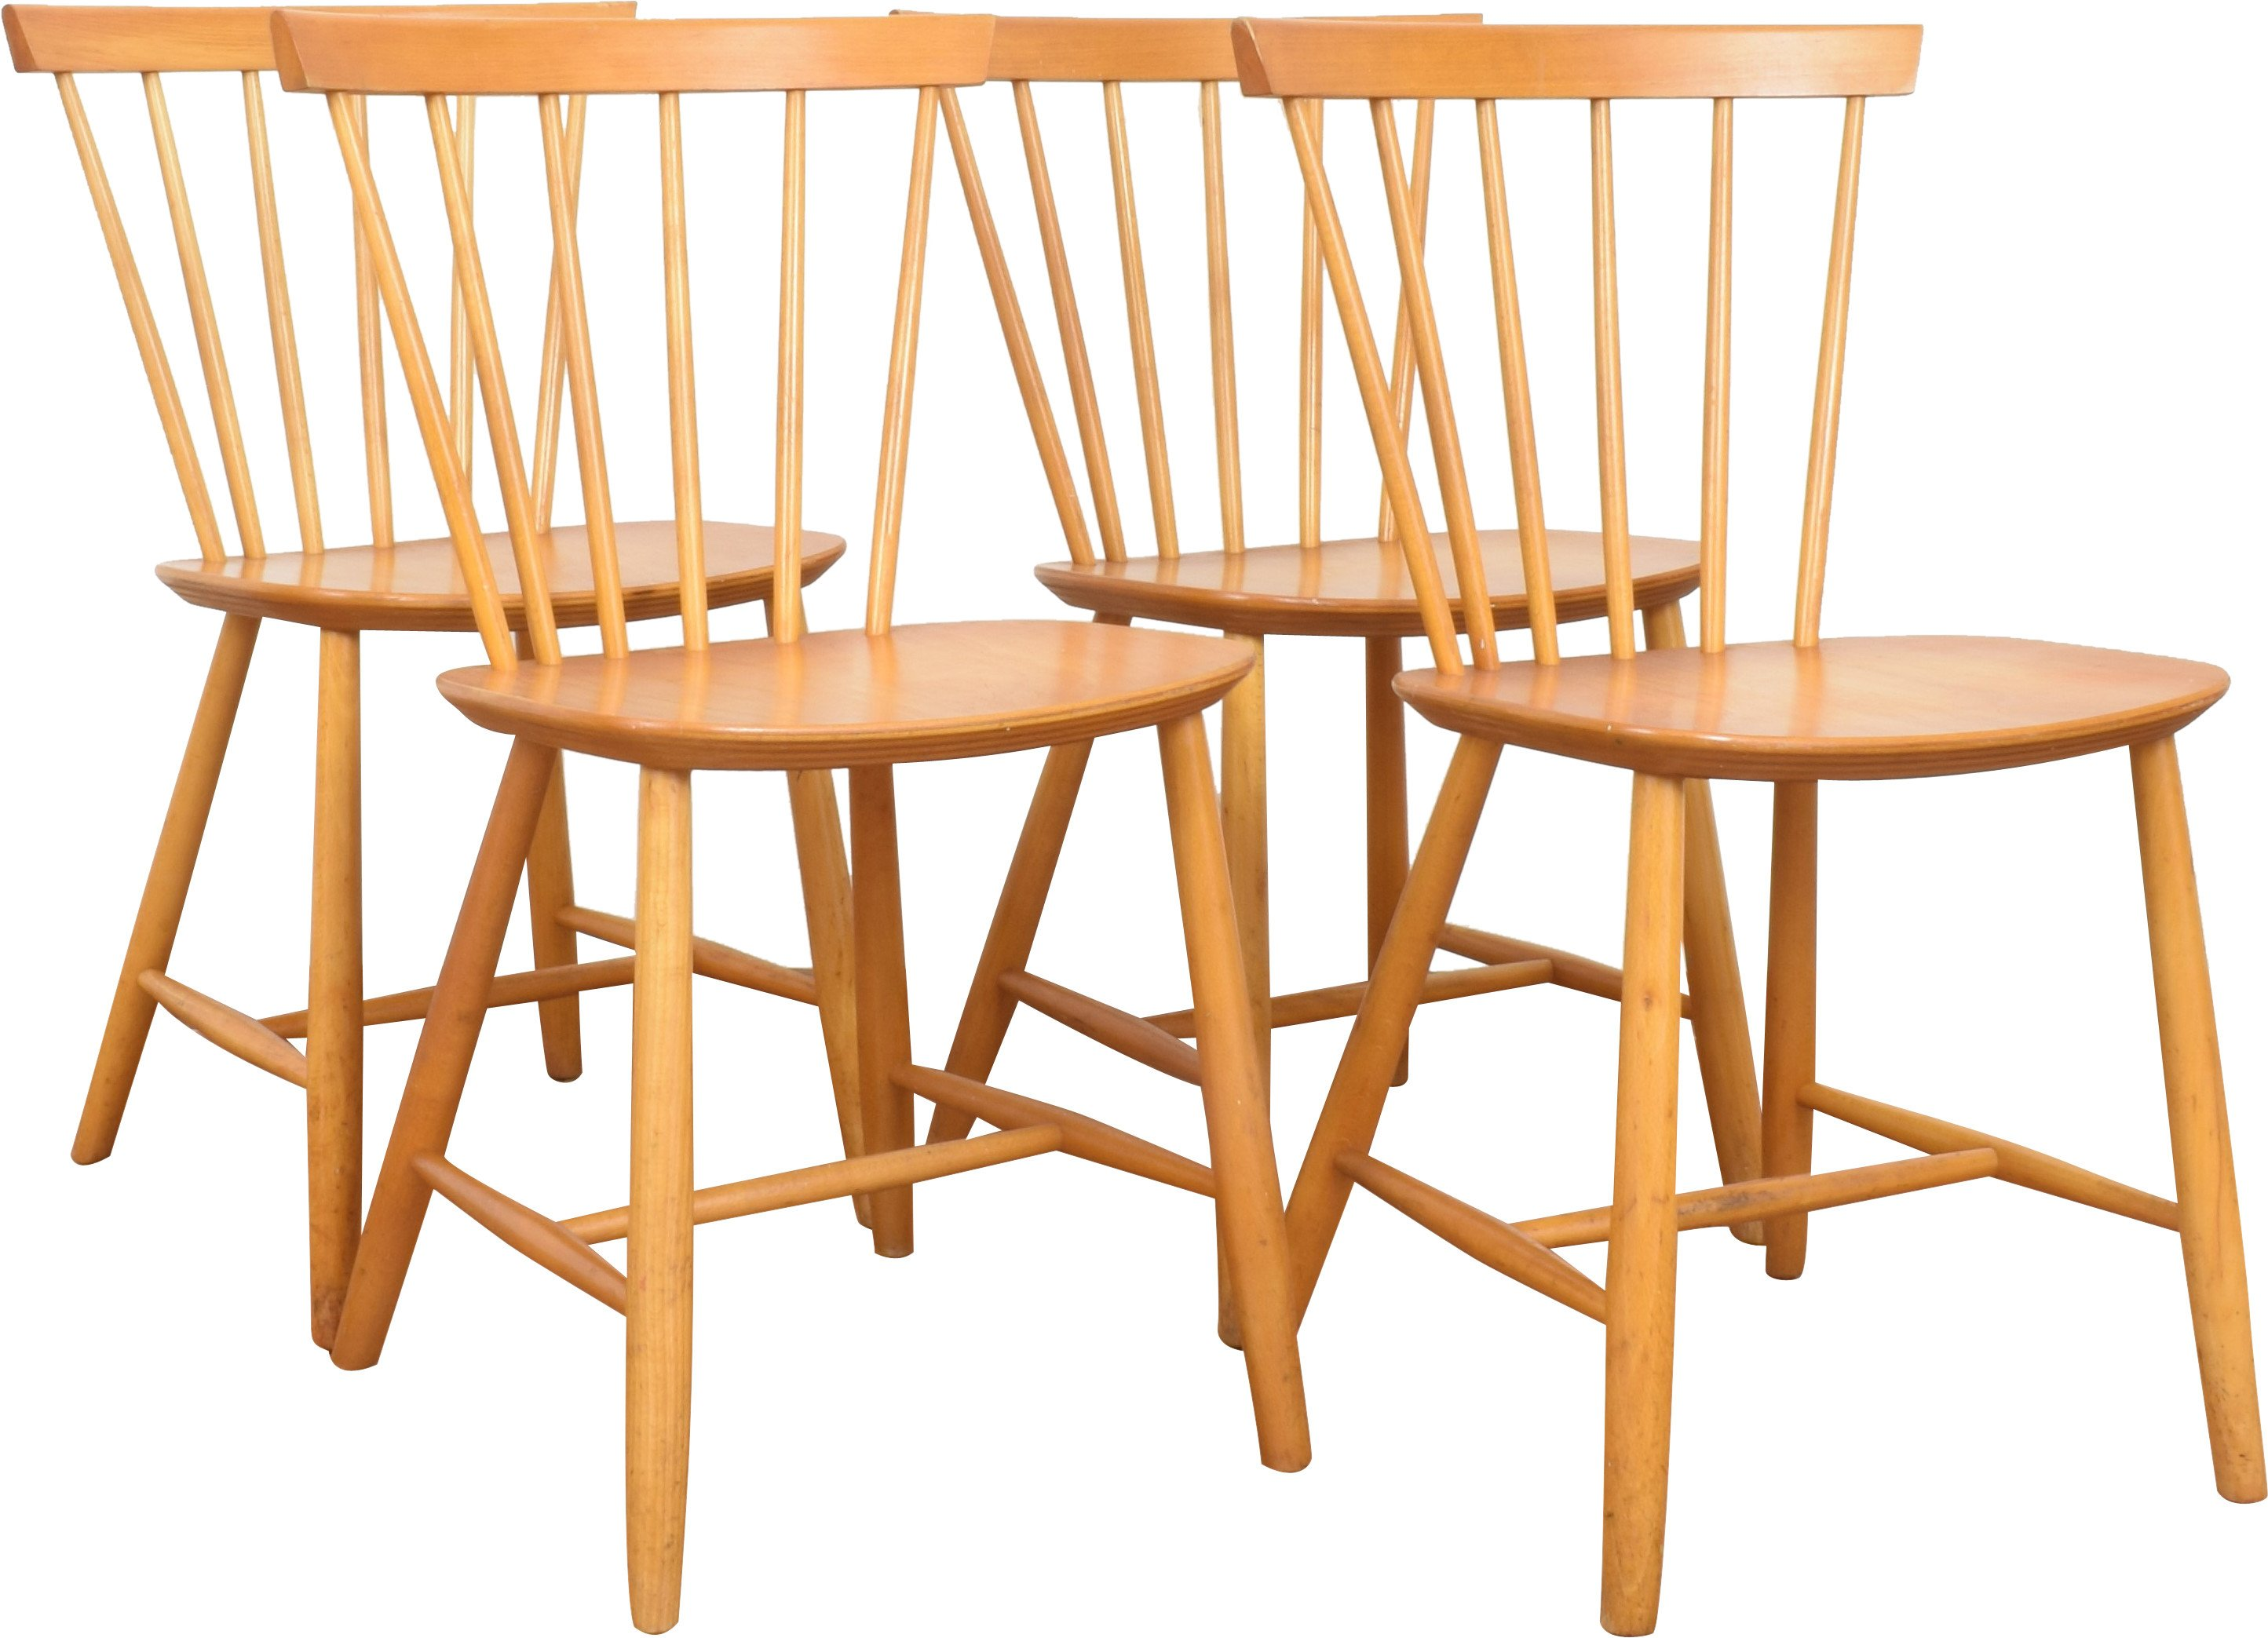 Set of Four Chairs, Farstrup Møbler, Denmark, 1960s